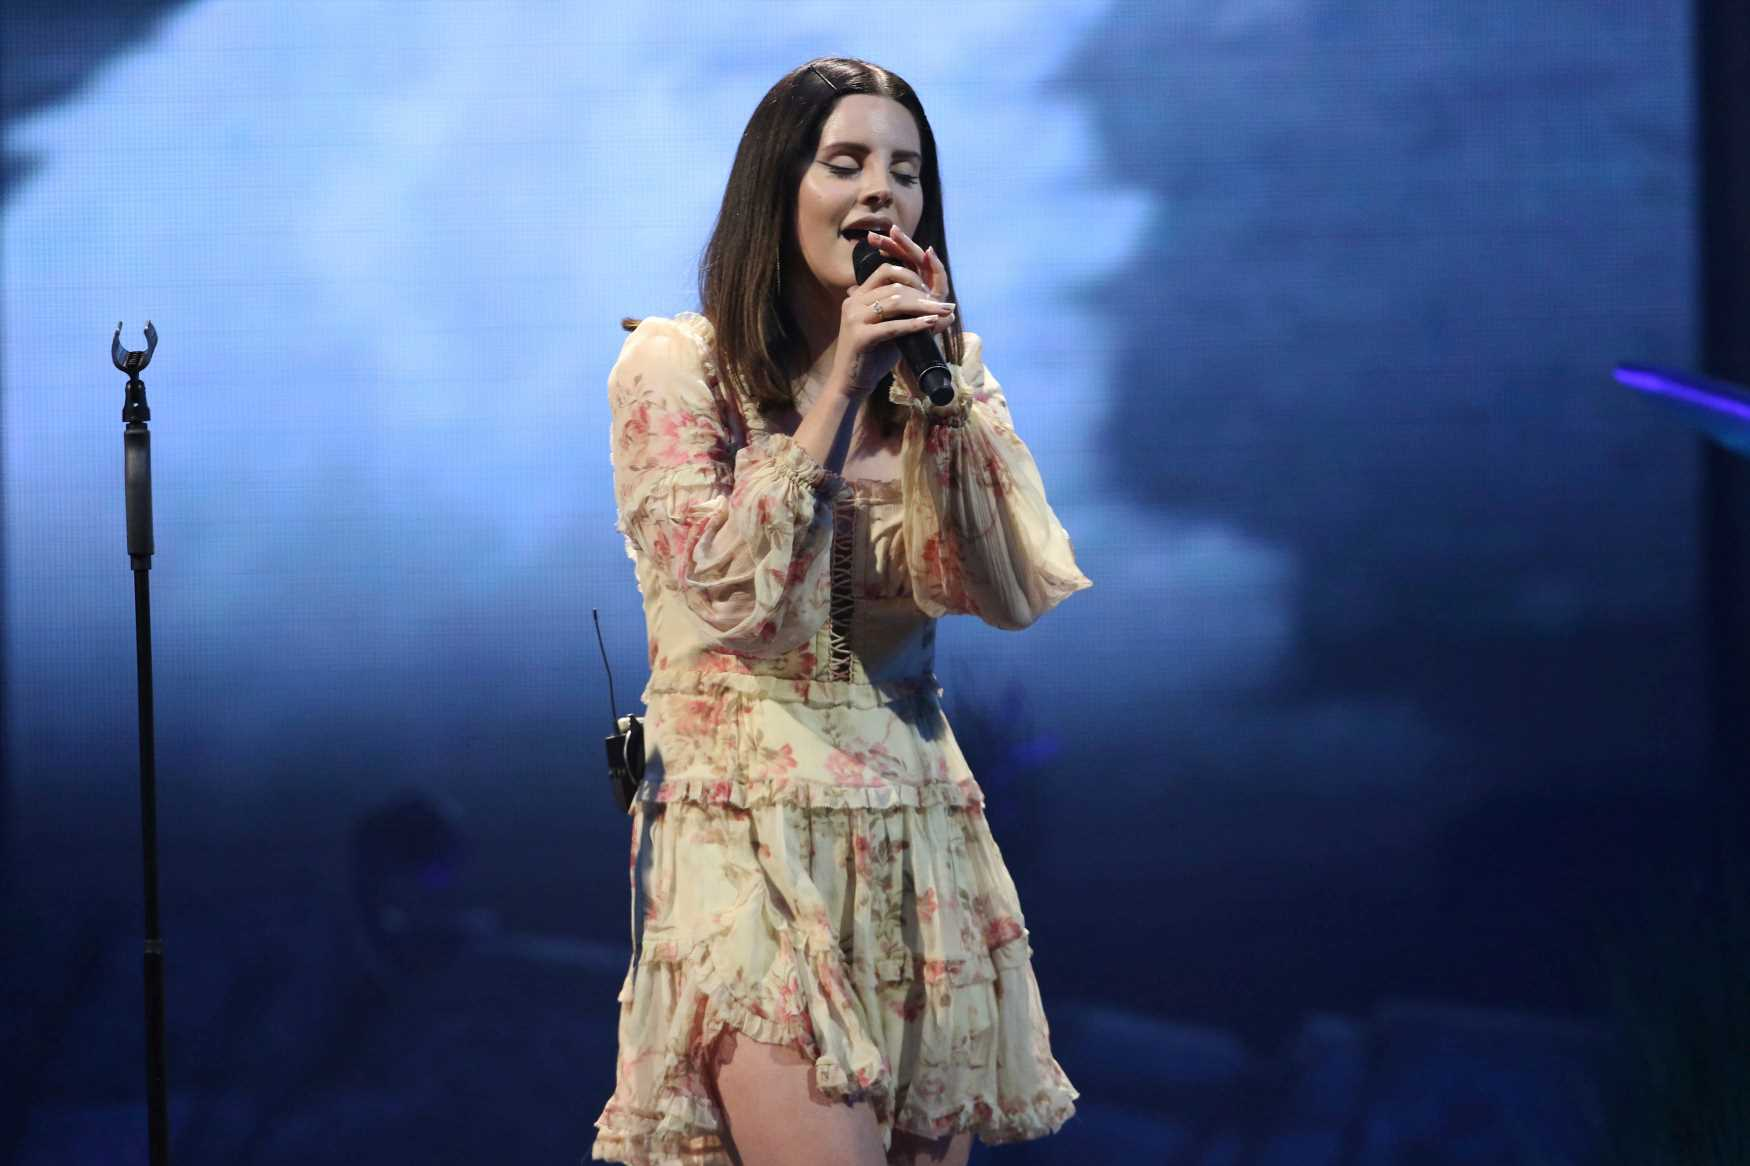 Watch Lana Del Rey's Live Debut of Sublime Cover 'Doin' Time'